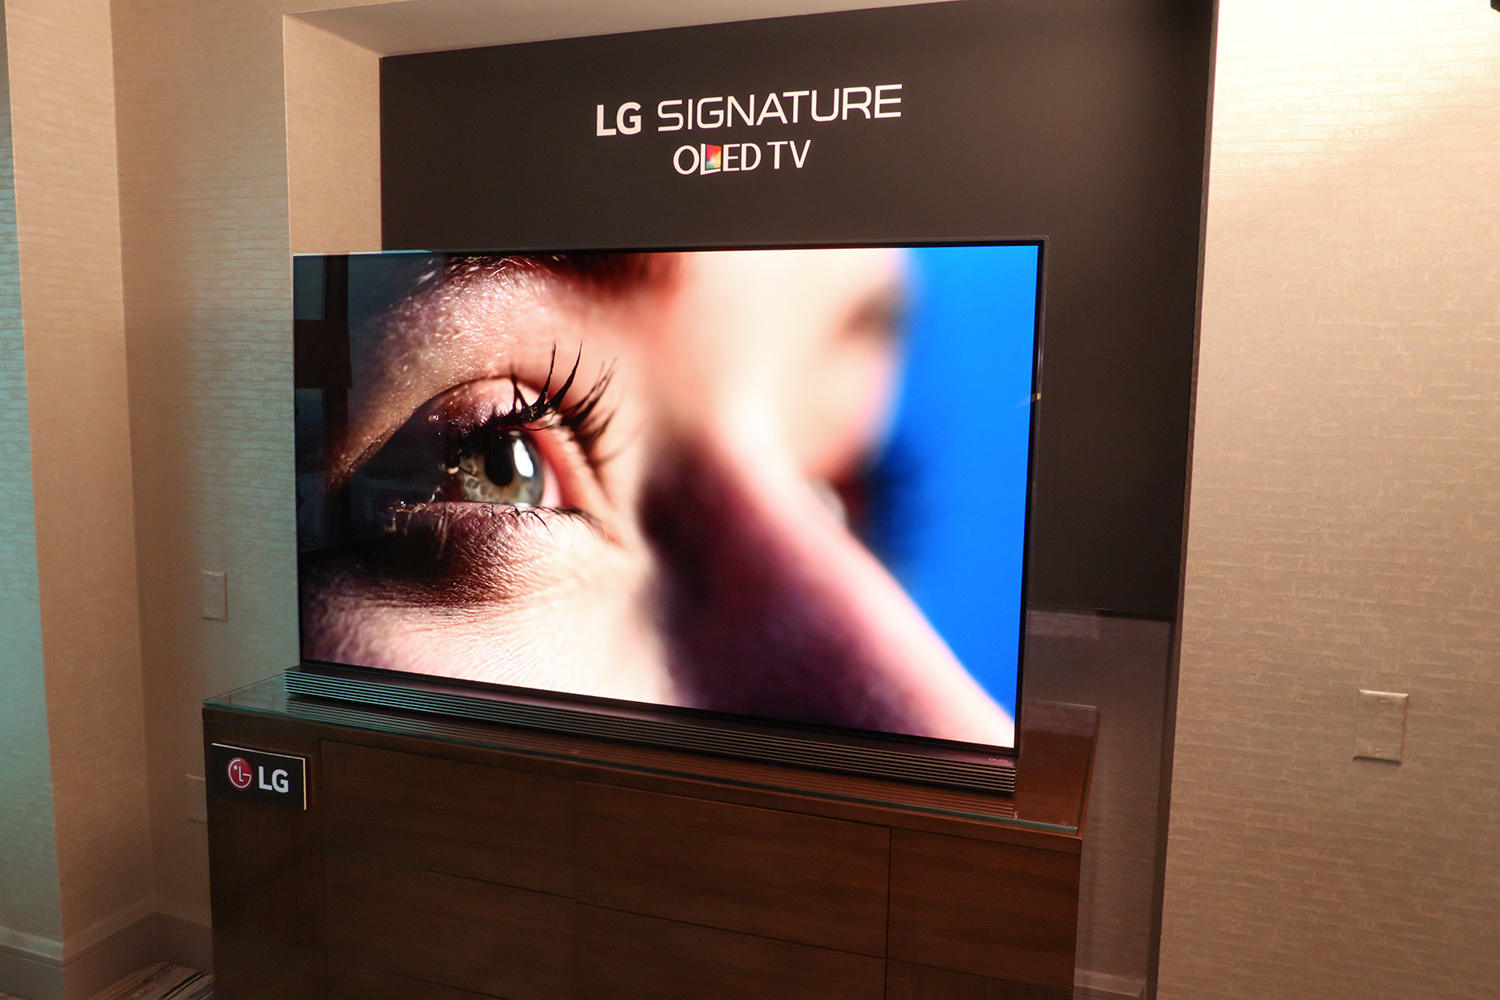 oled just got cheaper lg s ultra thin 65 inch signature g6 oled tv available for pre order. Black Bedroom Furniture Sets. Home Design Ideas